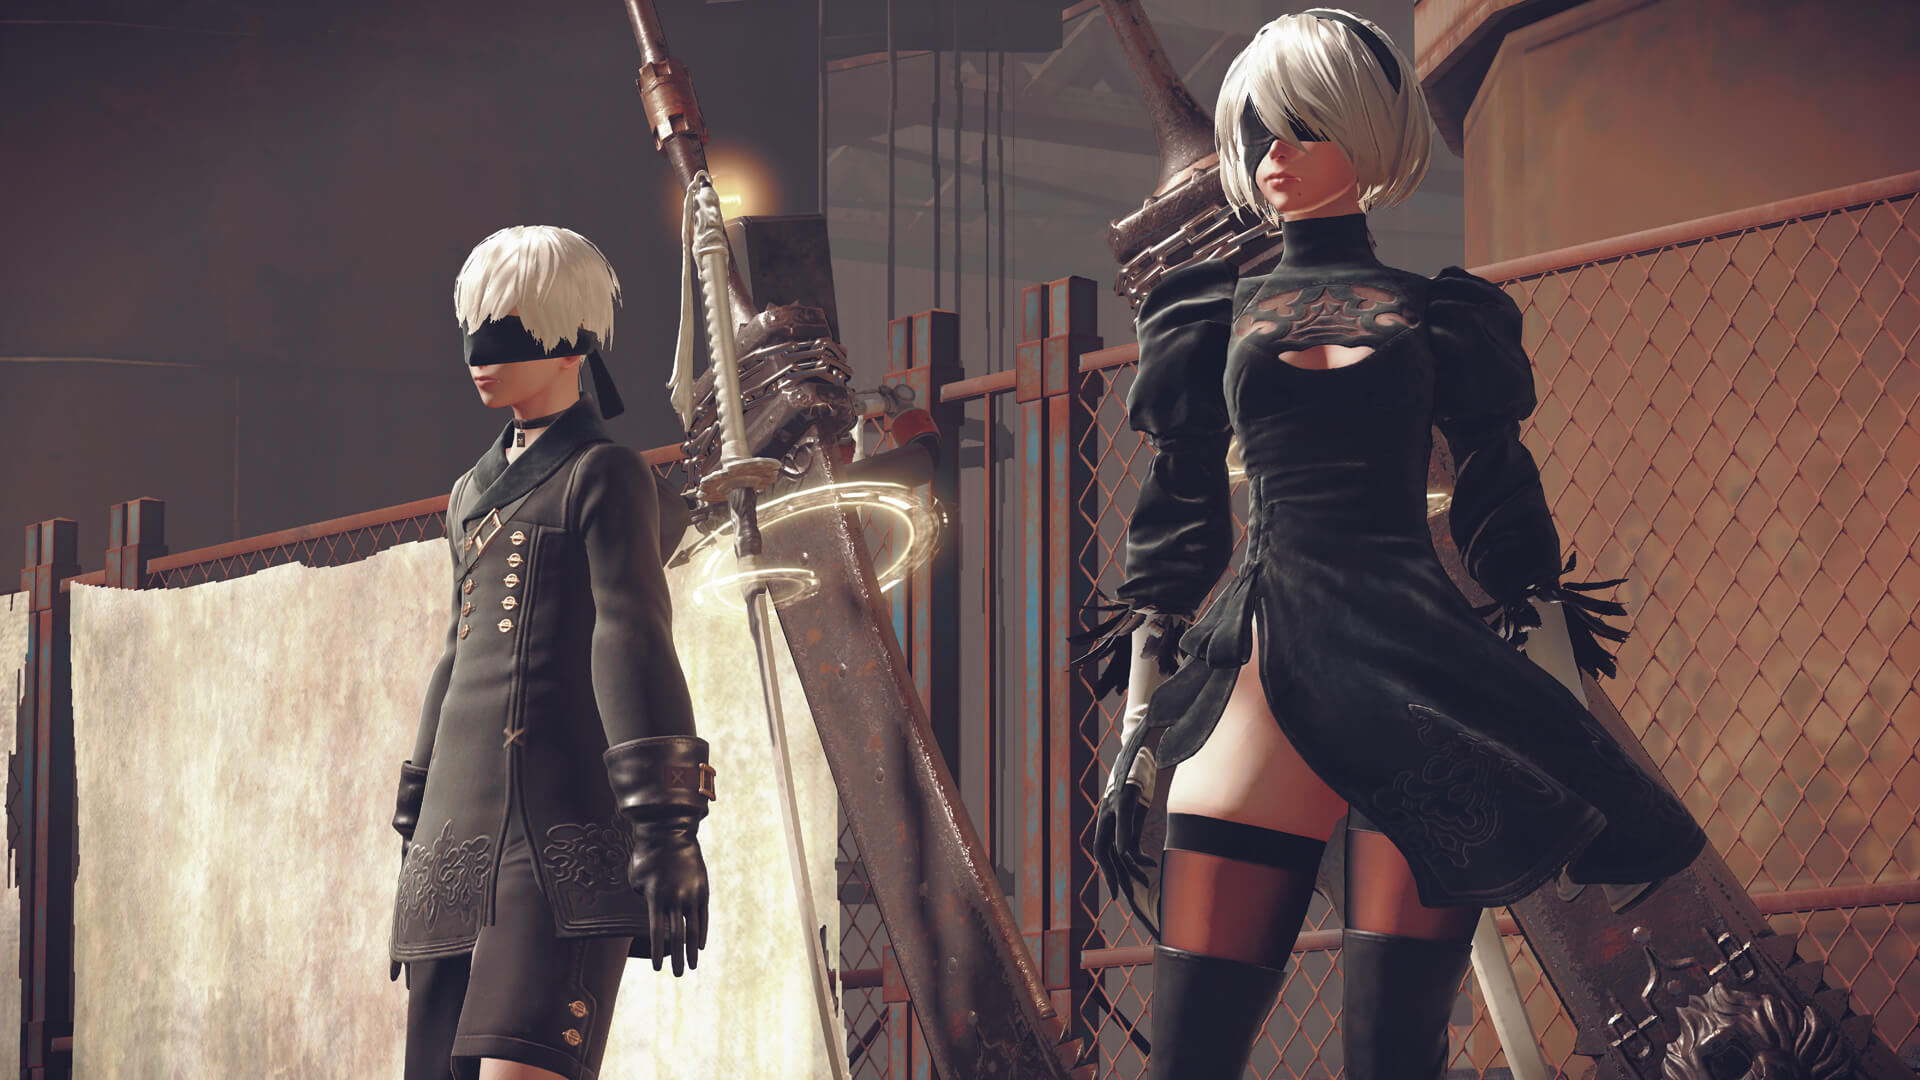 NieR Automata 9S and 2B